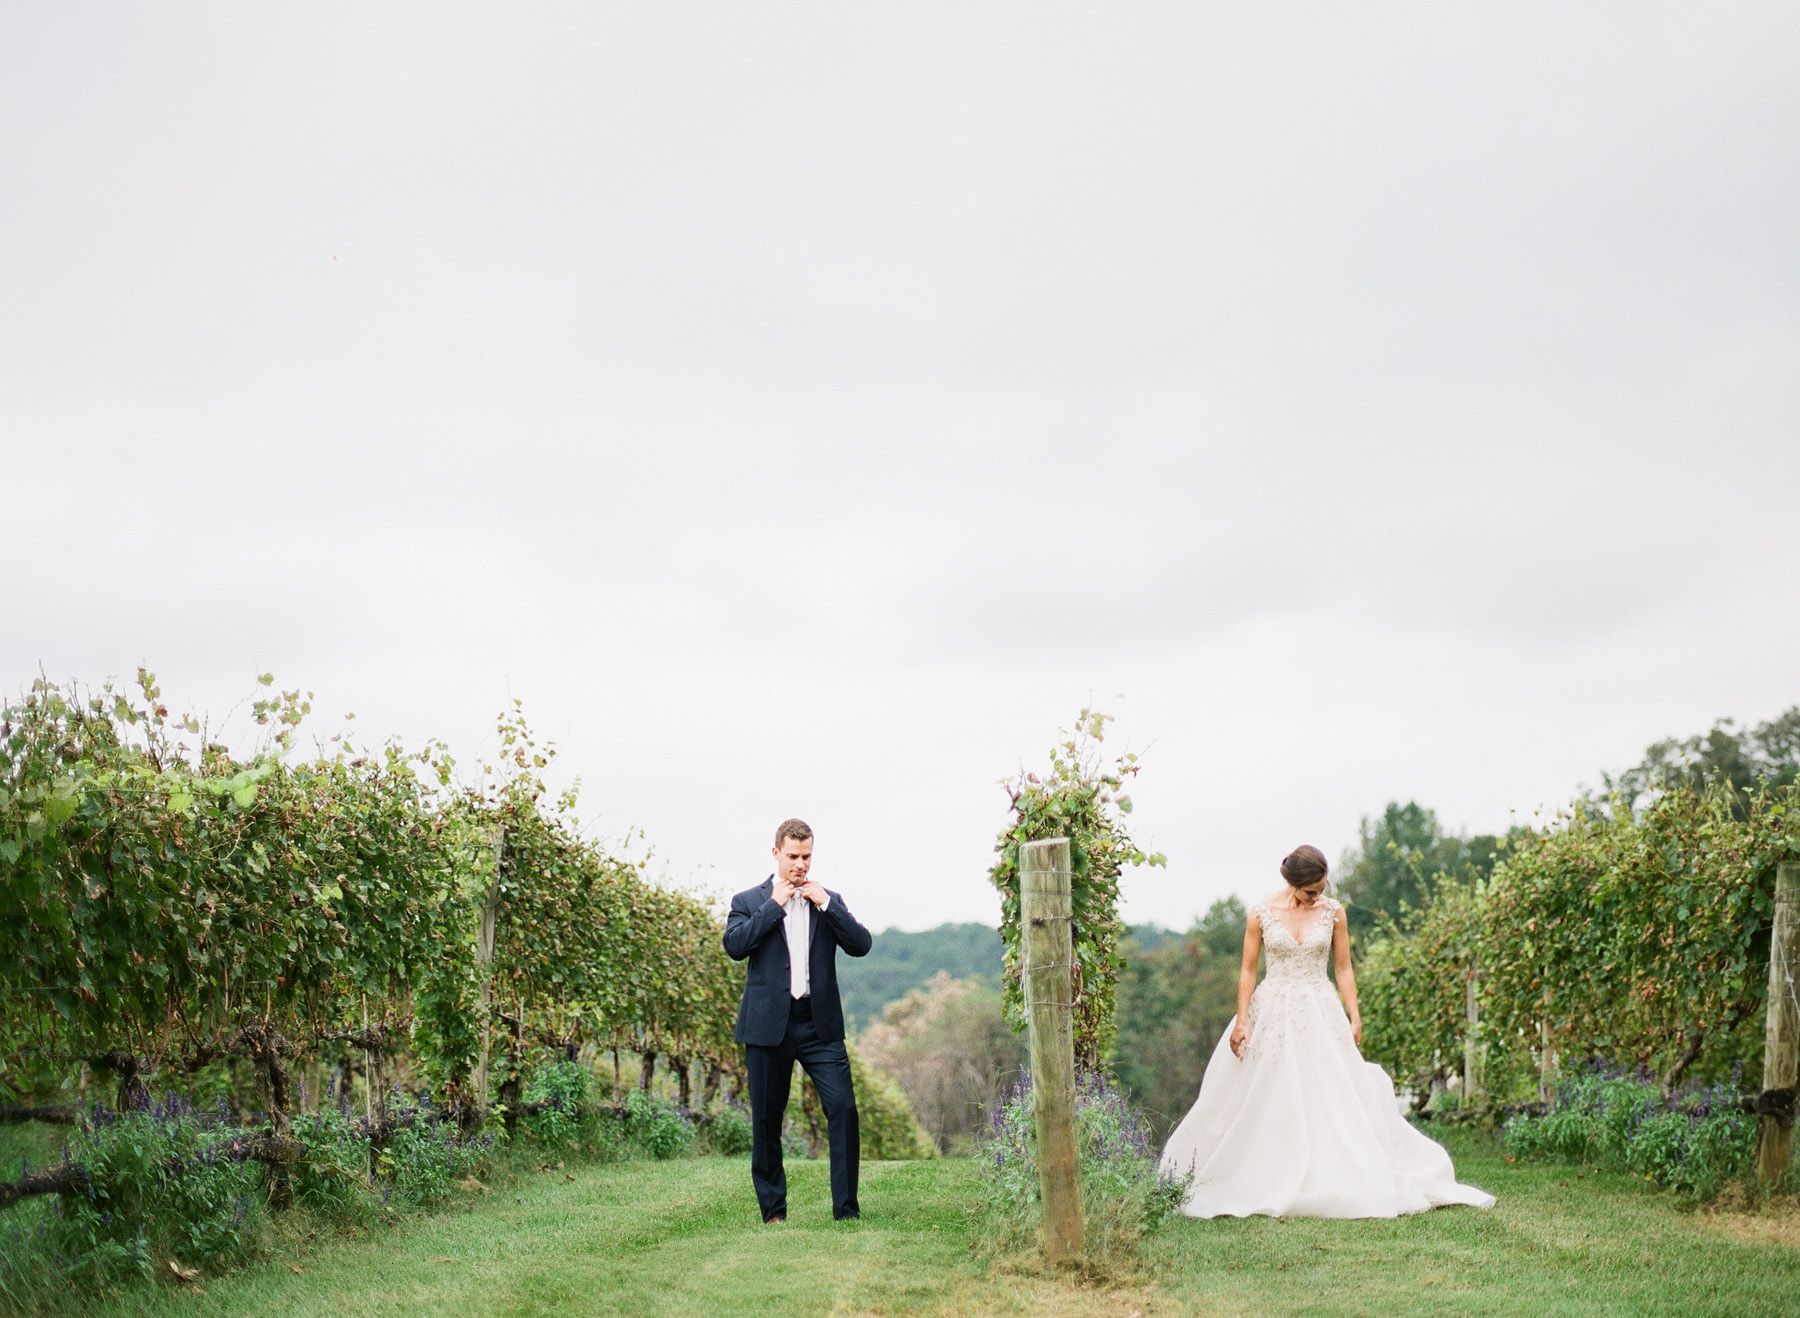 Pippin-Hill-Farm-and-Vinyards-Wedding-Film-Photography-19.jpg